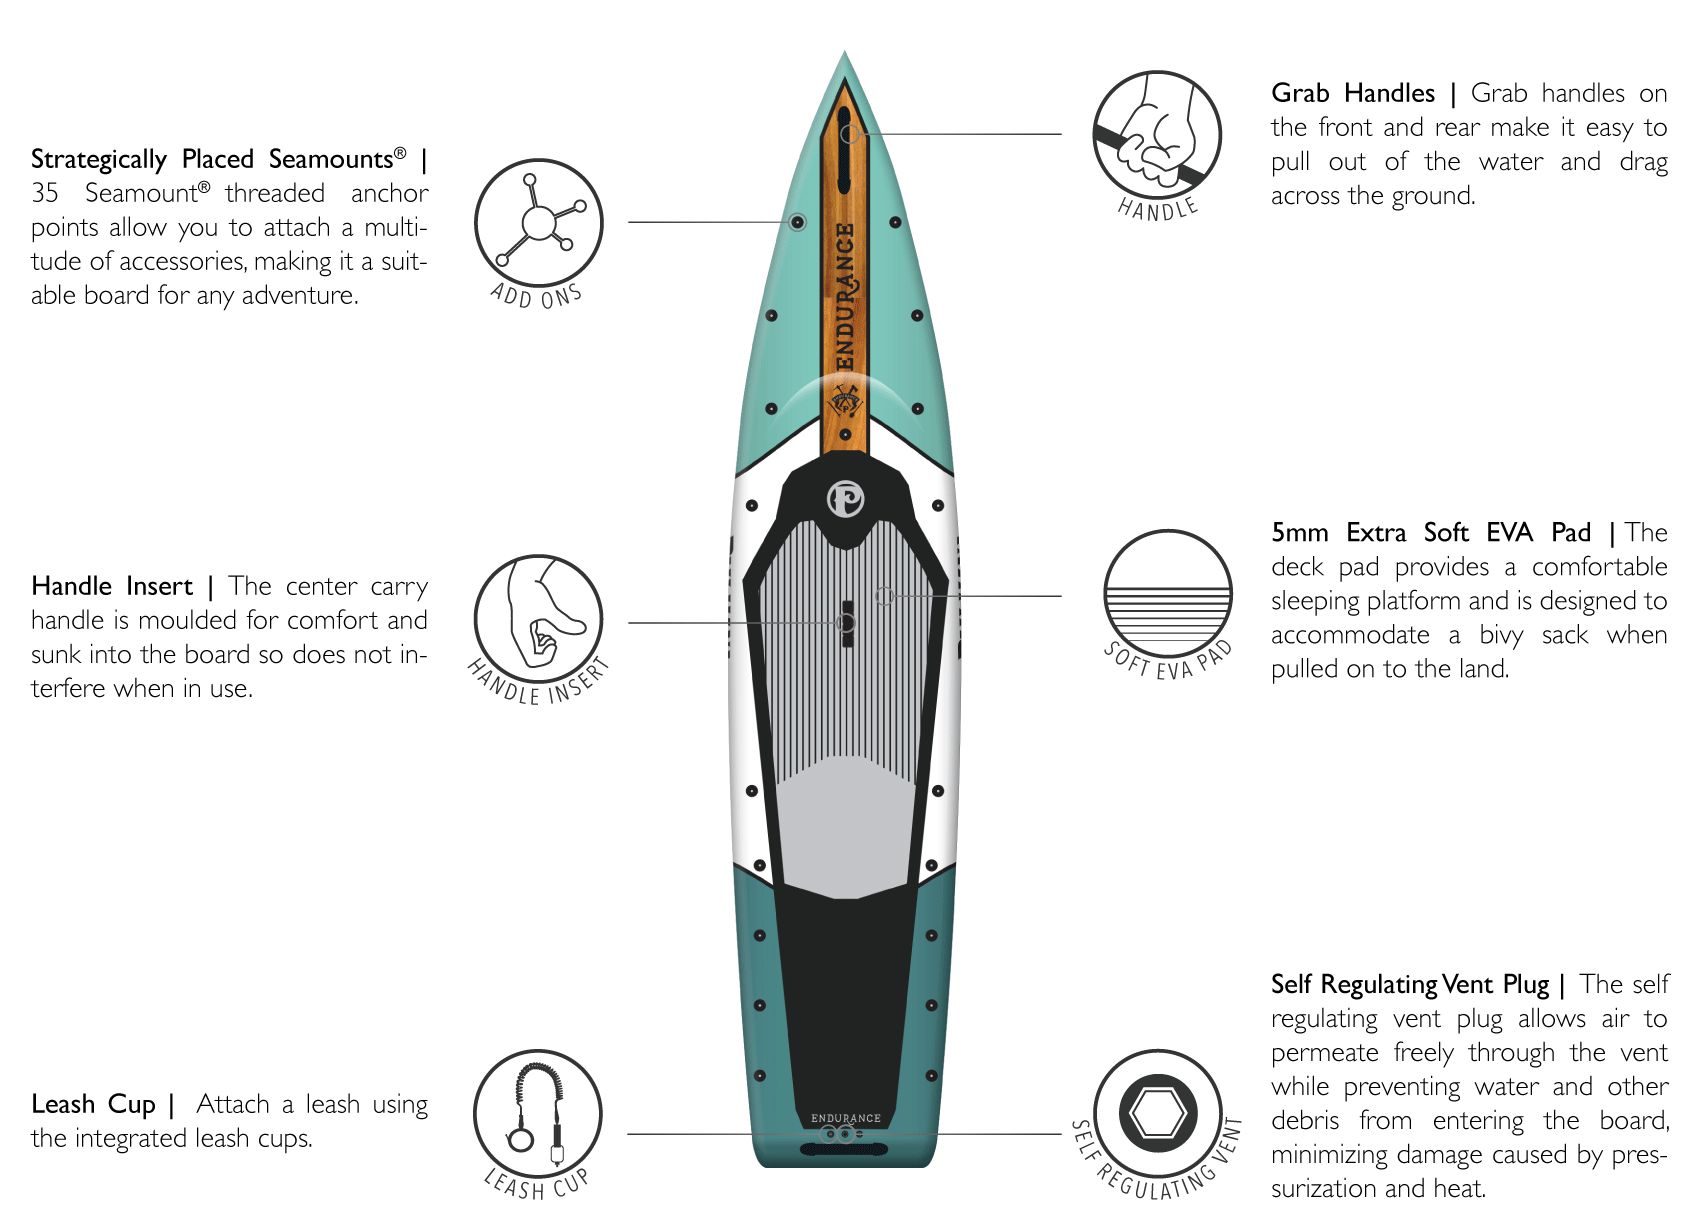 This is the best touring paddle board by Pau Hana.features of the endurance touring board strategically placed seamounts center grab handle leash cup carry handles 5mm extra soft EVA deck pad self regulating vent plug